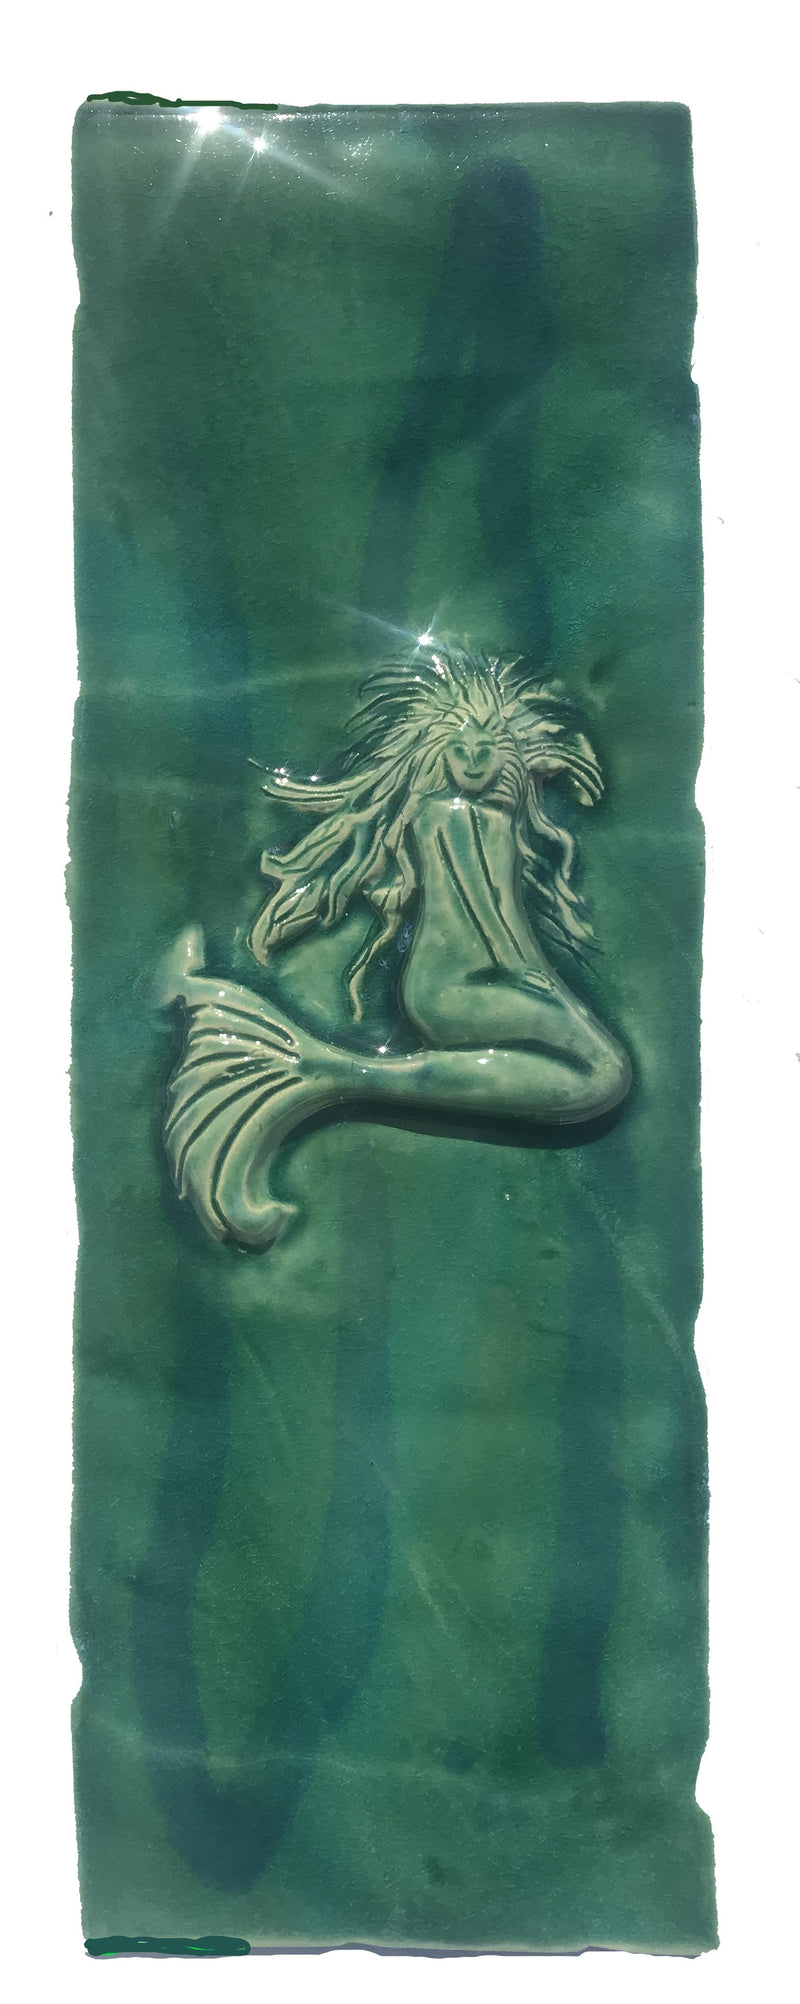 Ceramic Mermaid Design for Kitchen Backsplash Tile, Bathroom Tile, Wall Hanging 6x6x.5, $45.00 TP46